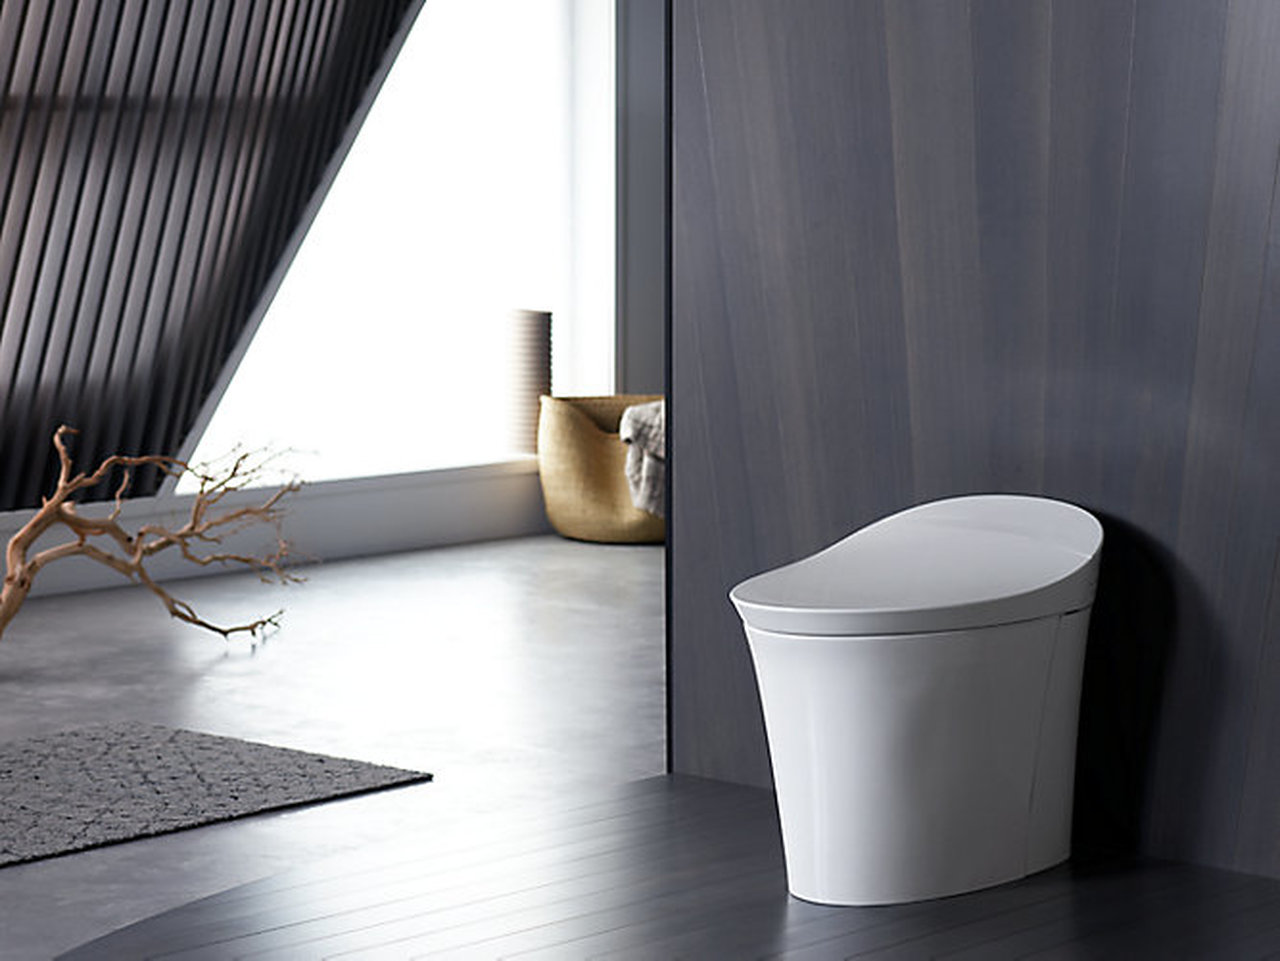 KOHLER K-5401-0 Veil Skirted Dual Flush